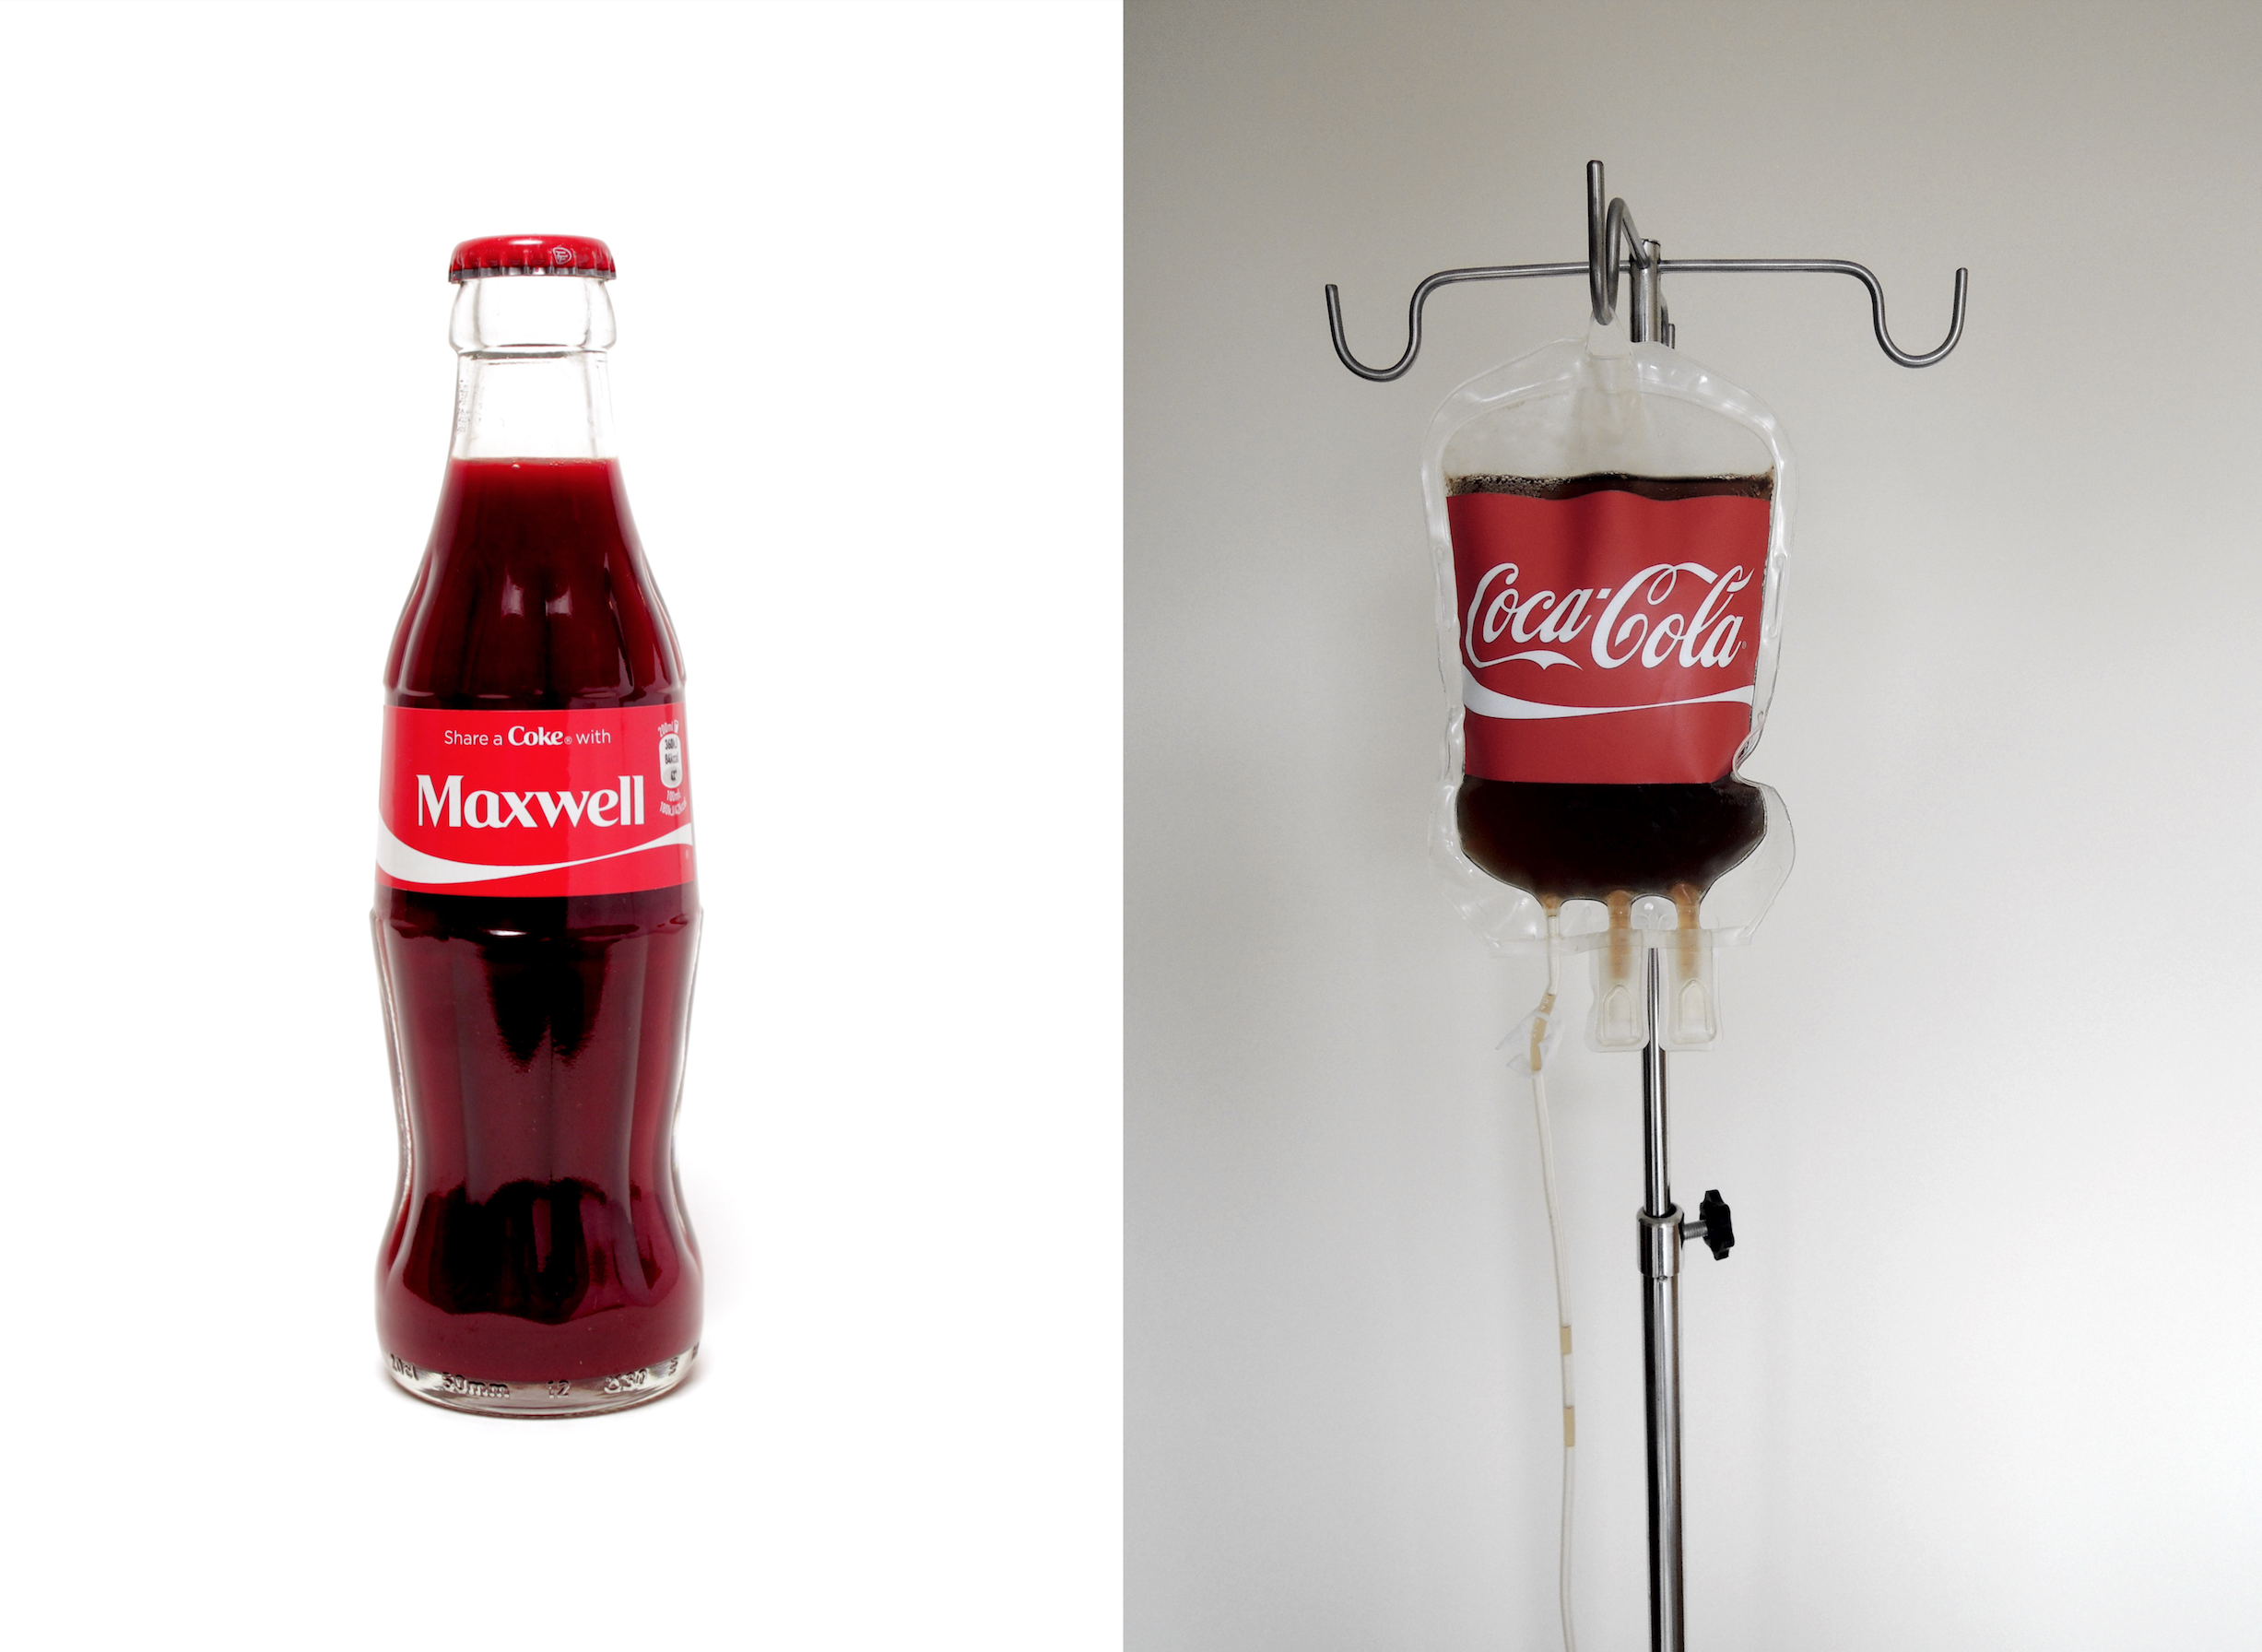 share A Coke + IV